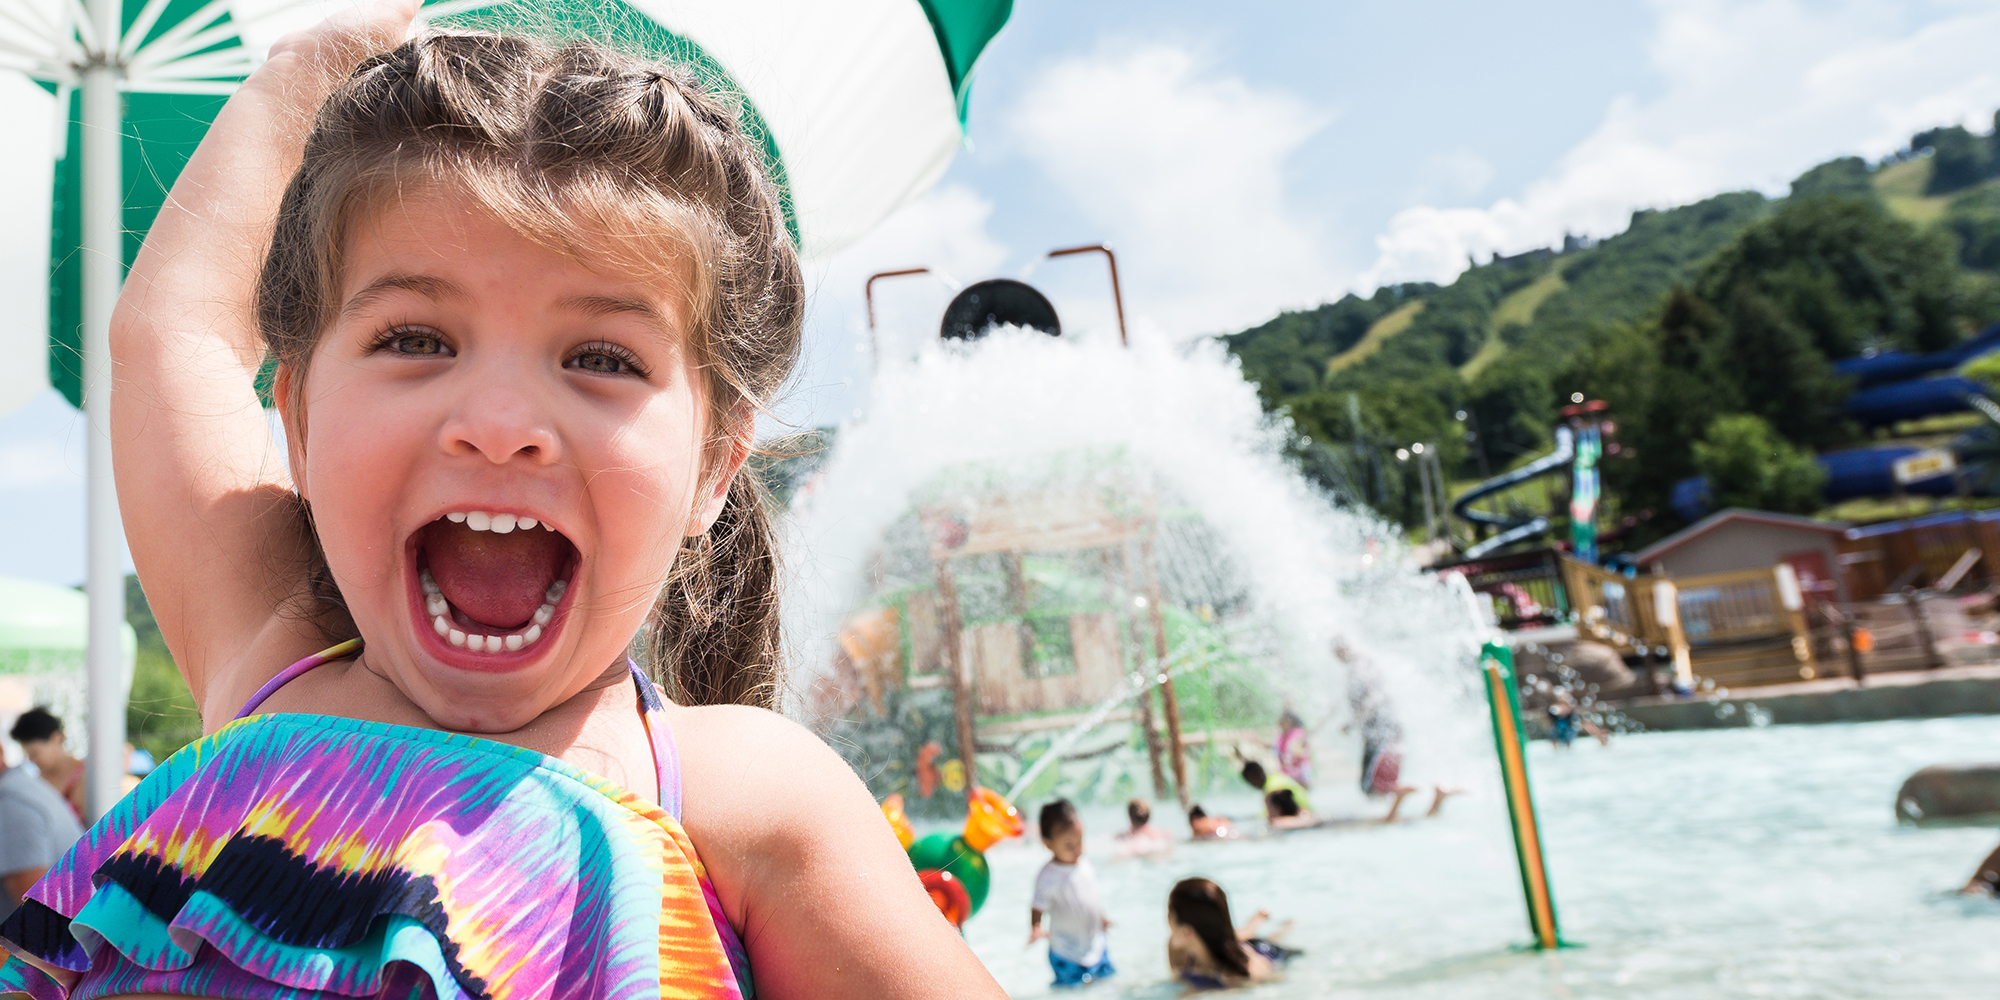 Happy child at camelbeach mountain water park